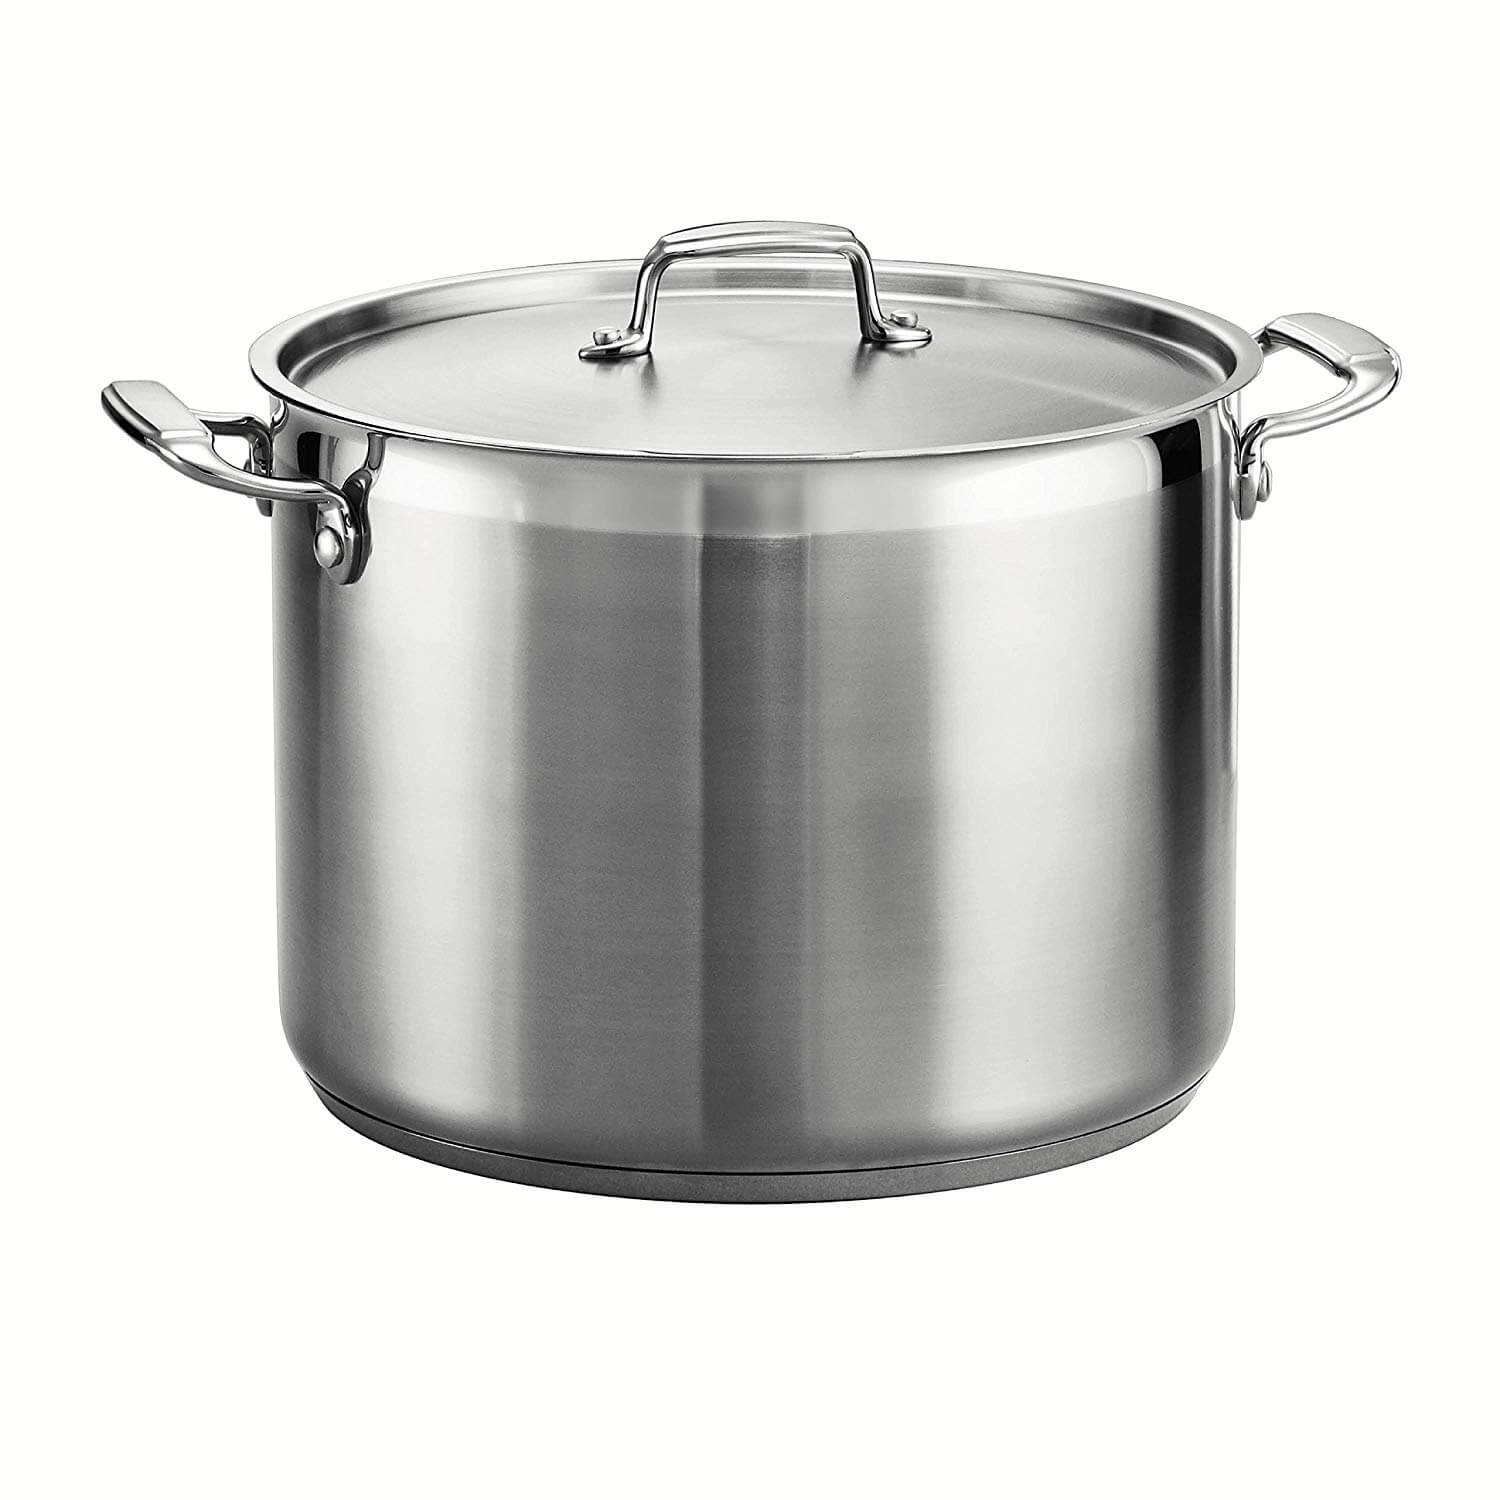 Tramontina 80120 001DS Tramontina Gourmet Stainless Steel Covered Stock Pot